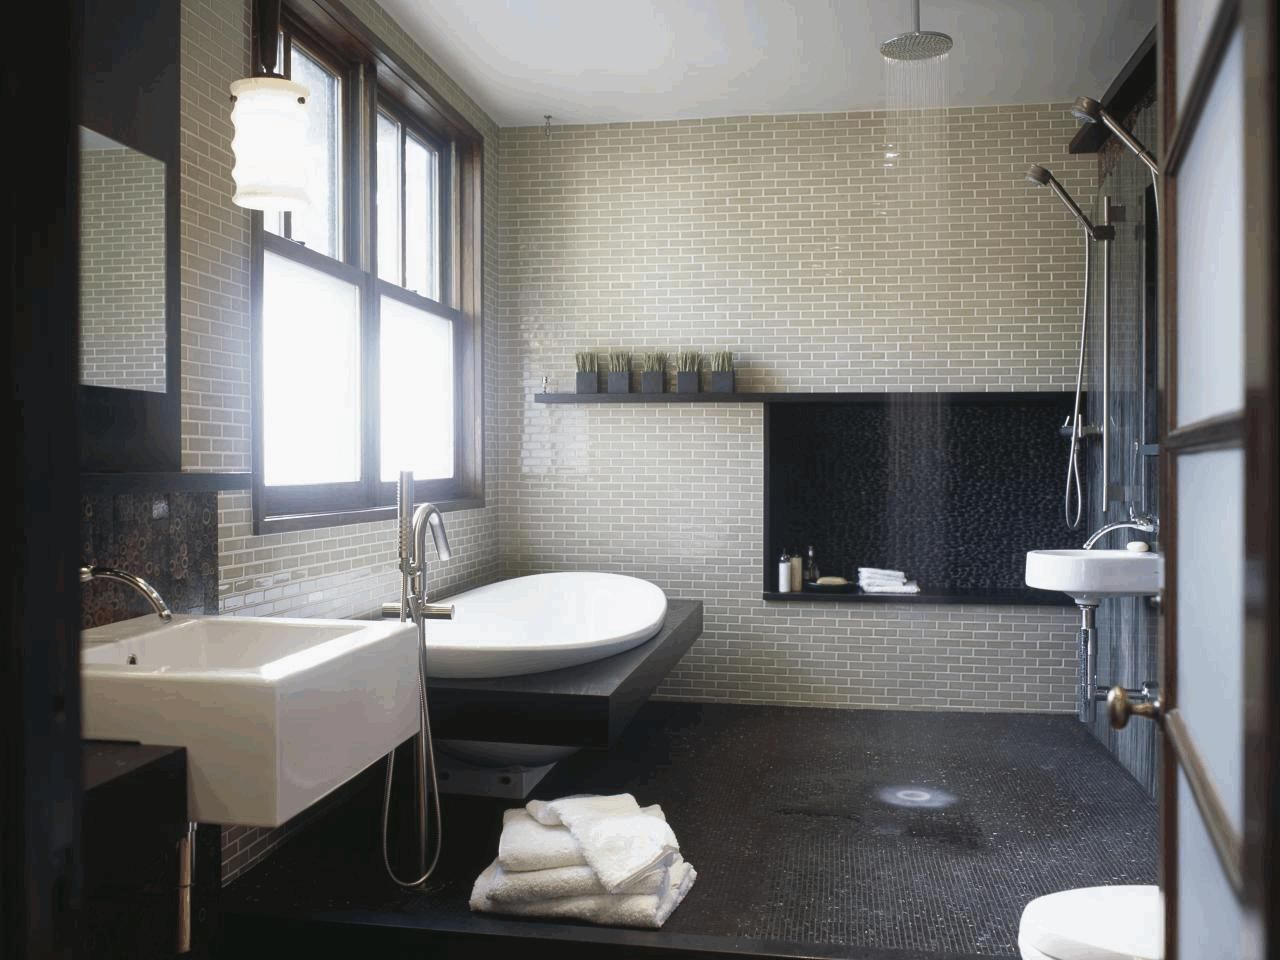 Image Result For Colored Clawfoot Tub Bangin Bathrooms